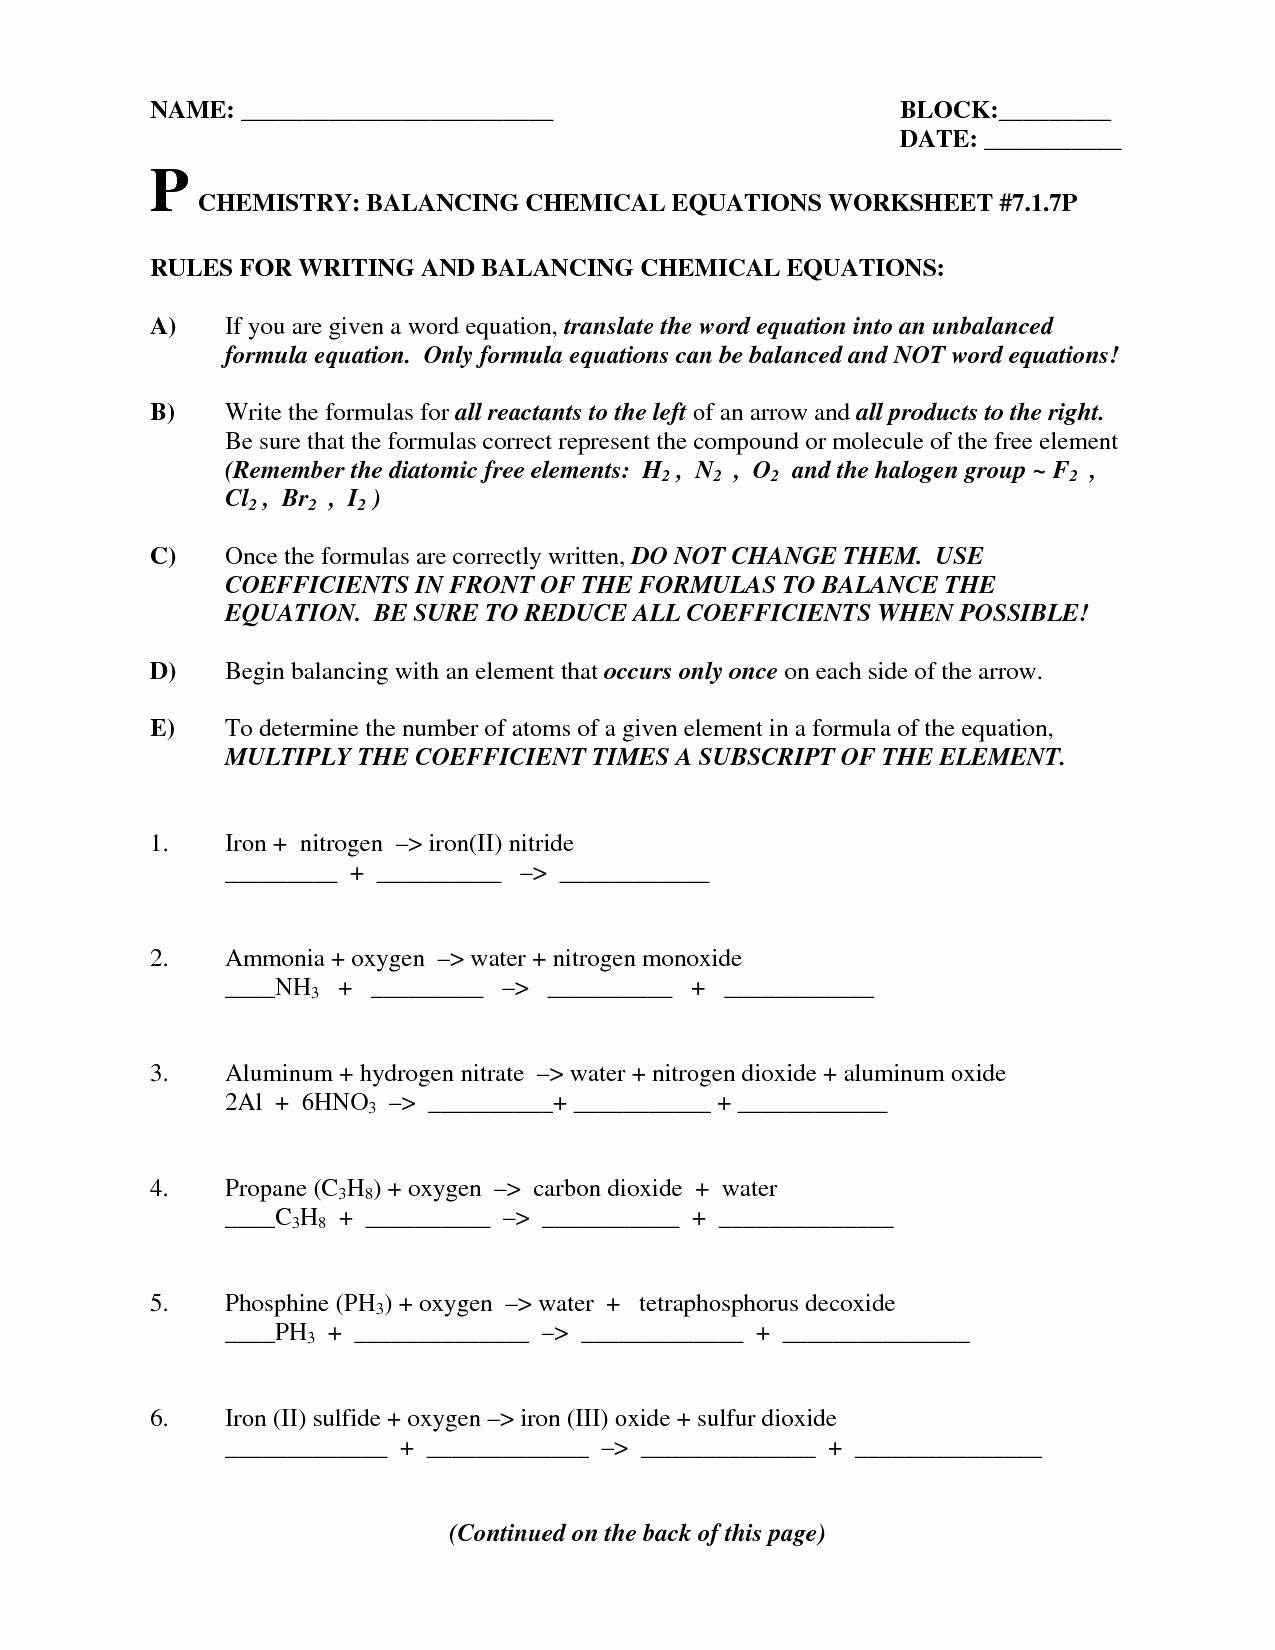 Half Life Worksheet Answers Elegant Half Life Worksheet Answer Key